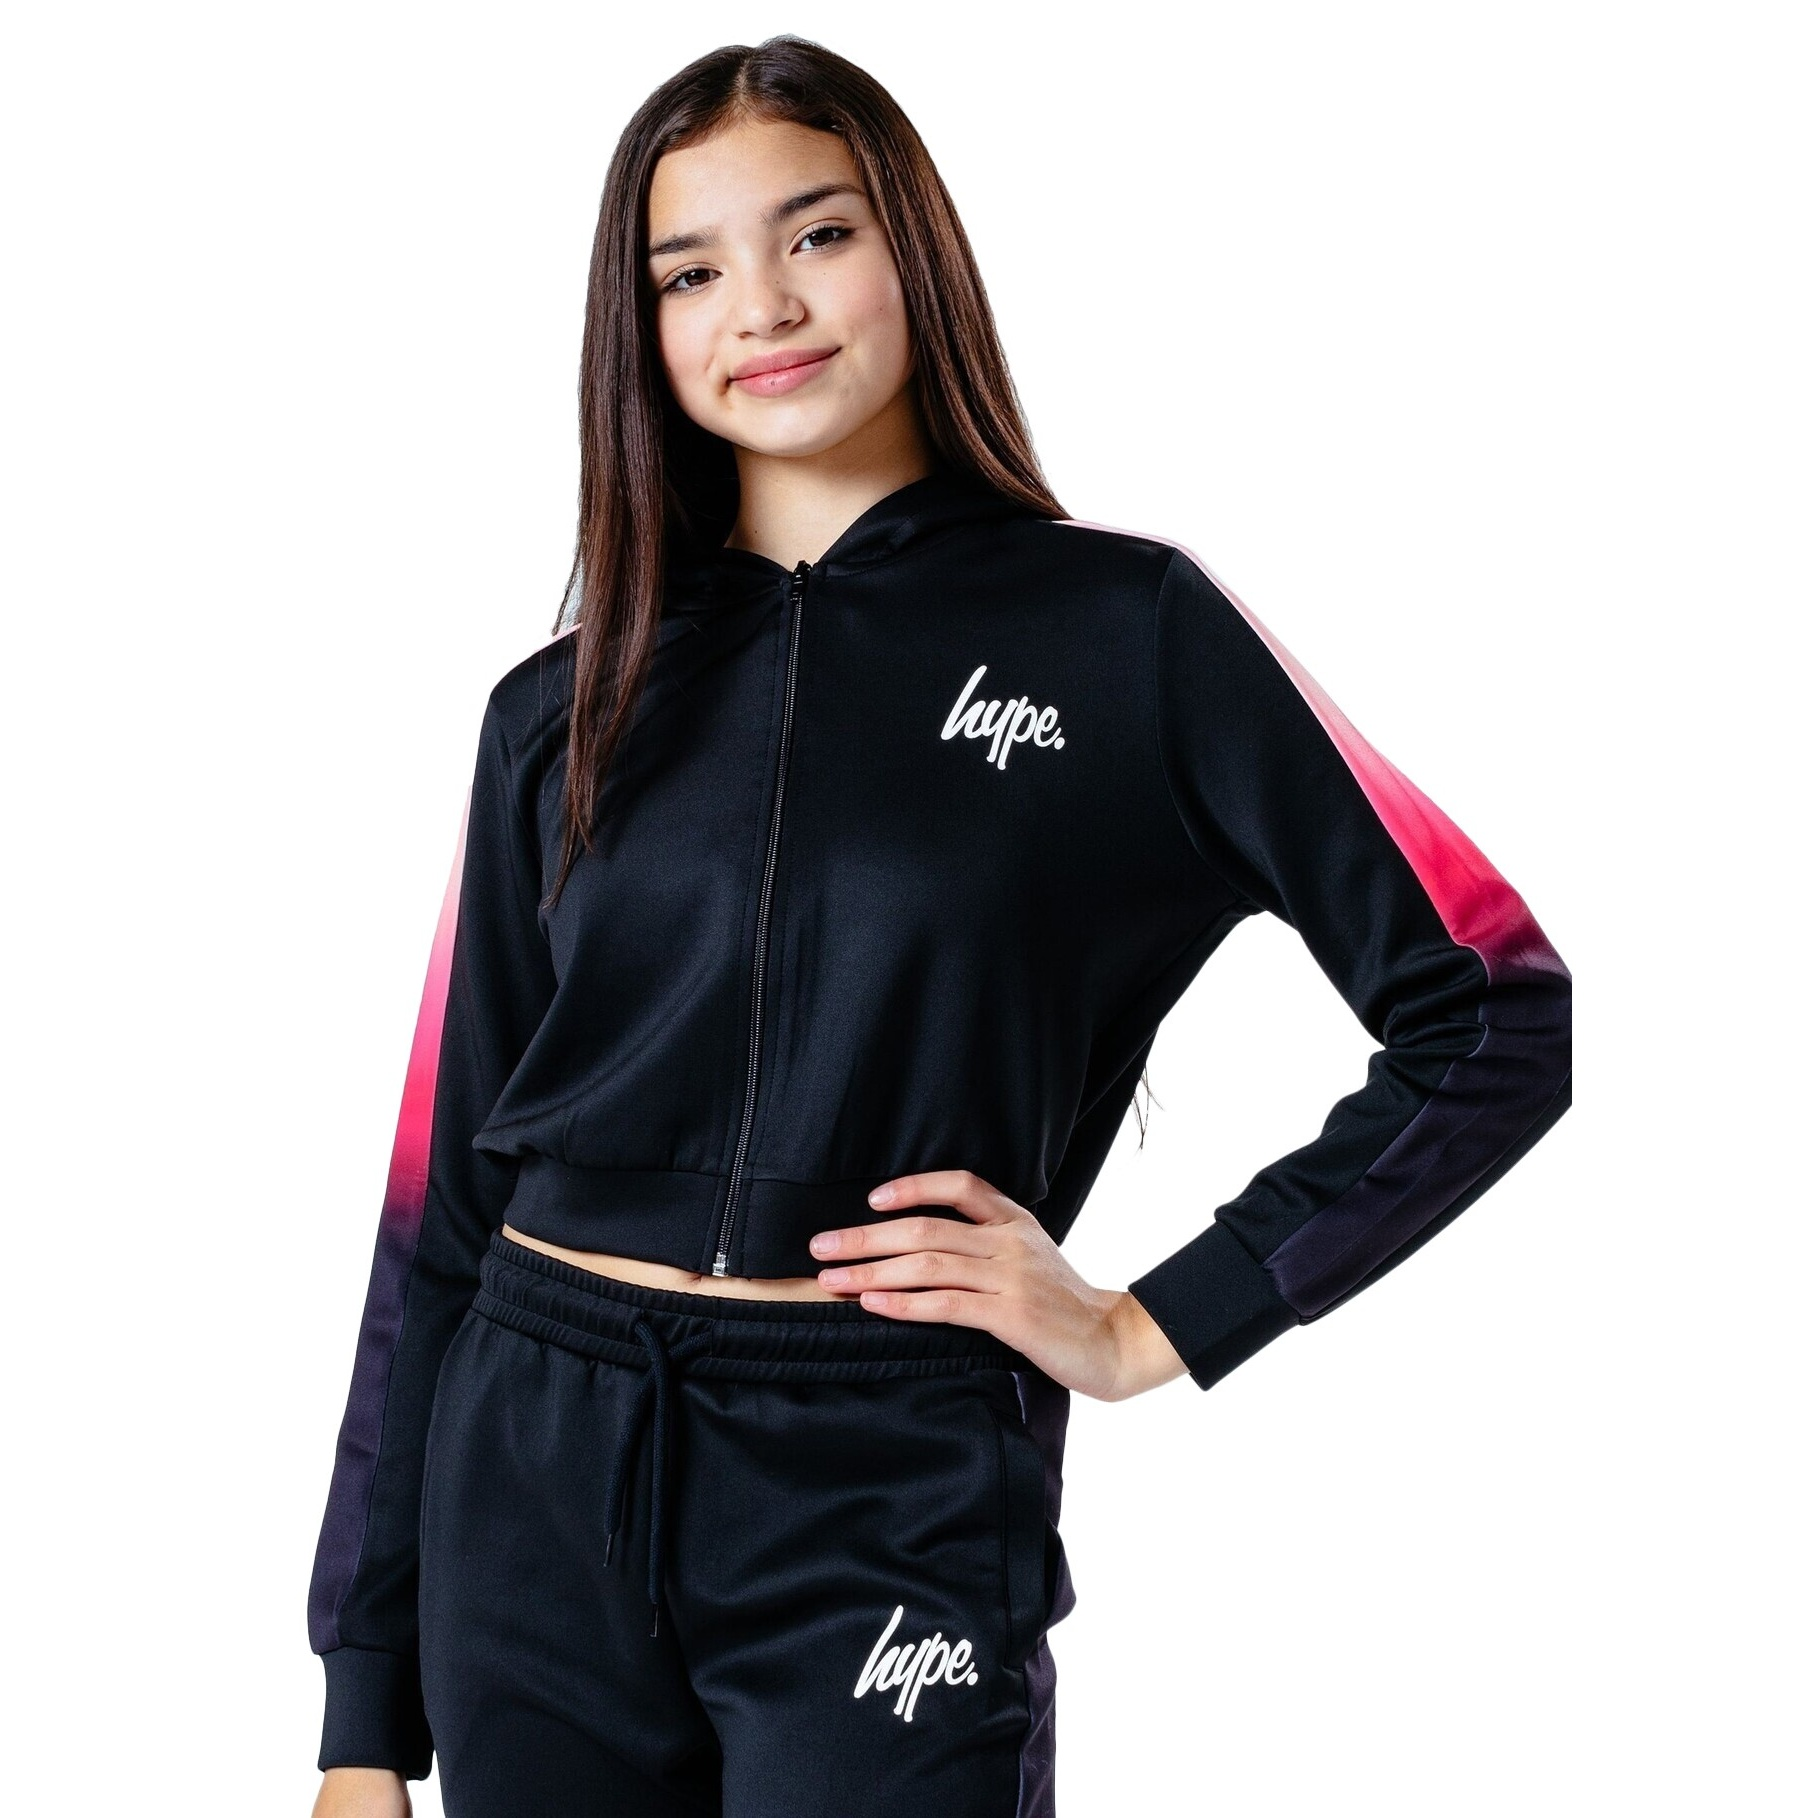 Hype Girls Fade Track Jacket (7-8 Years) (Black/Pink)